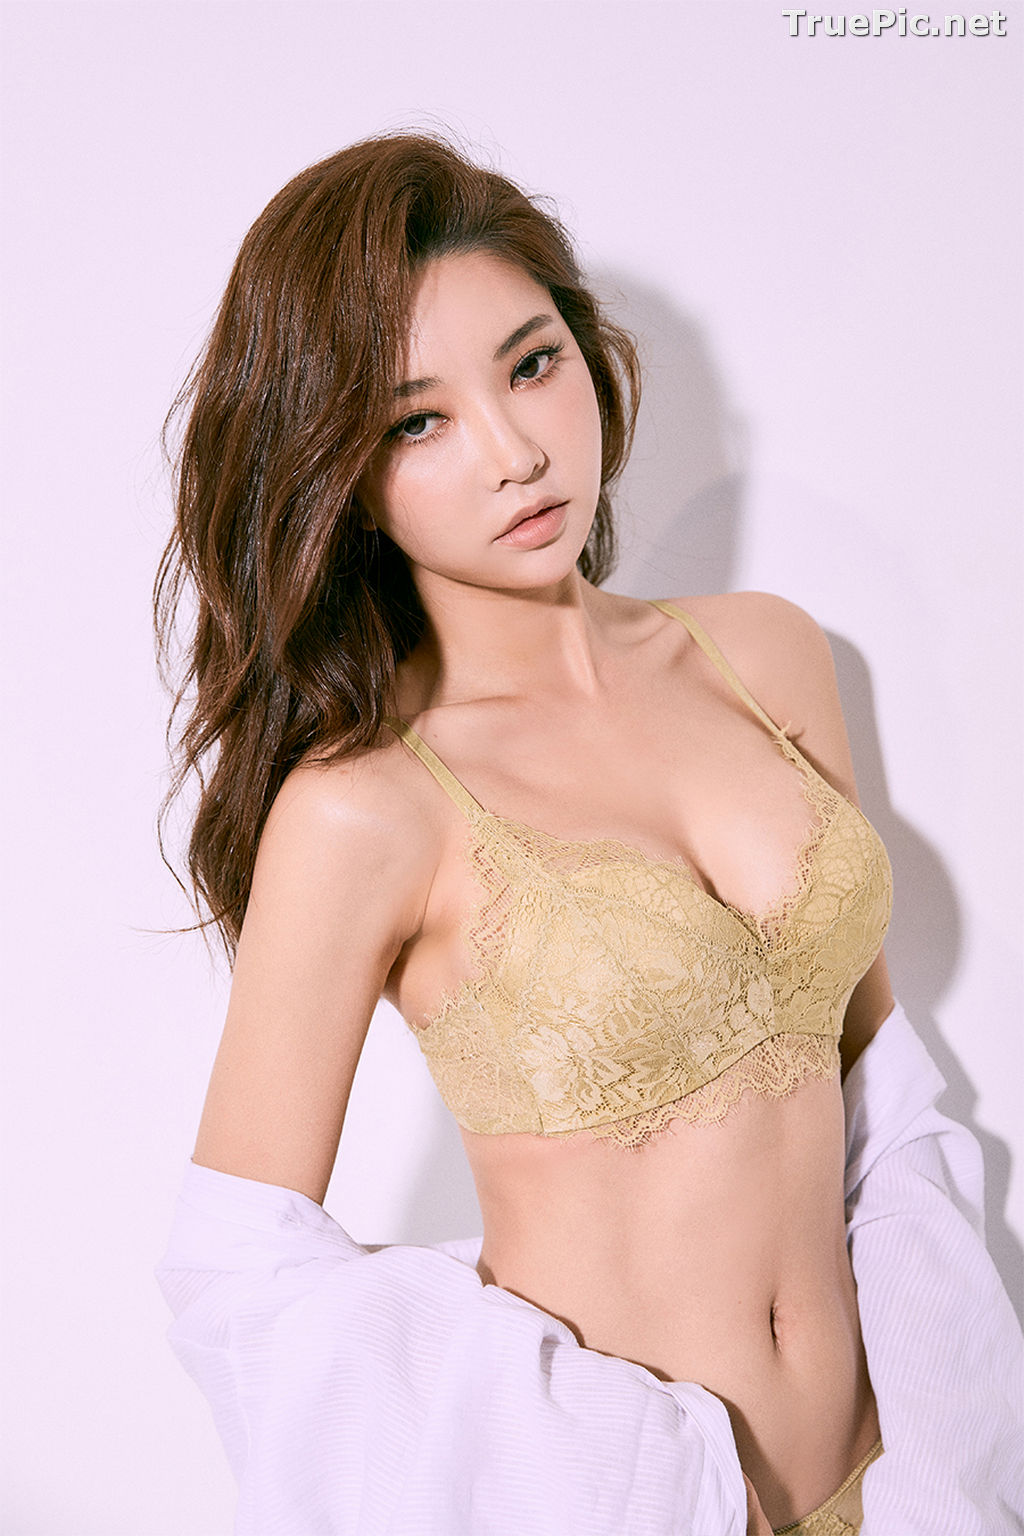 Image Korean Fashion Model – Park Soo Yeon (박수연) – Come On Vincent Lingerie #1 - TruePic.net - Picture-2